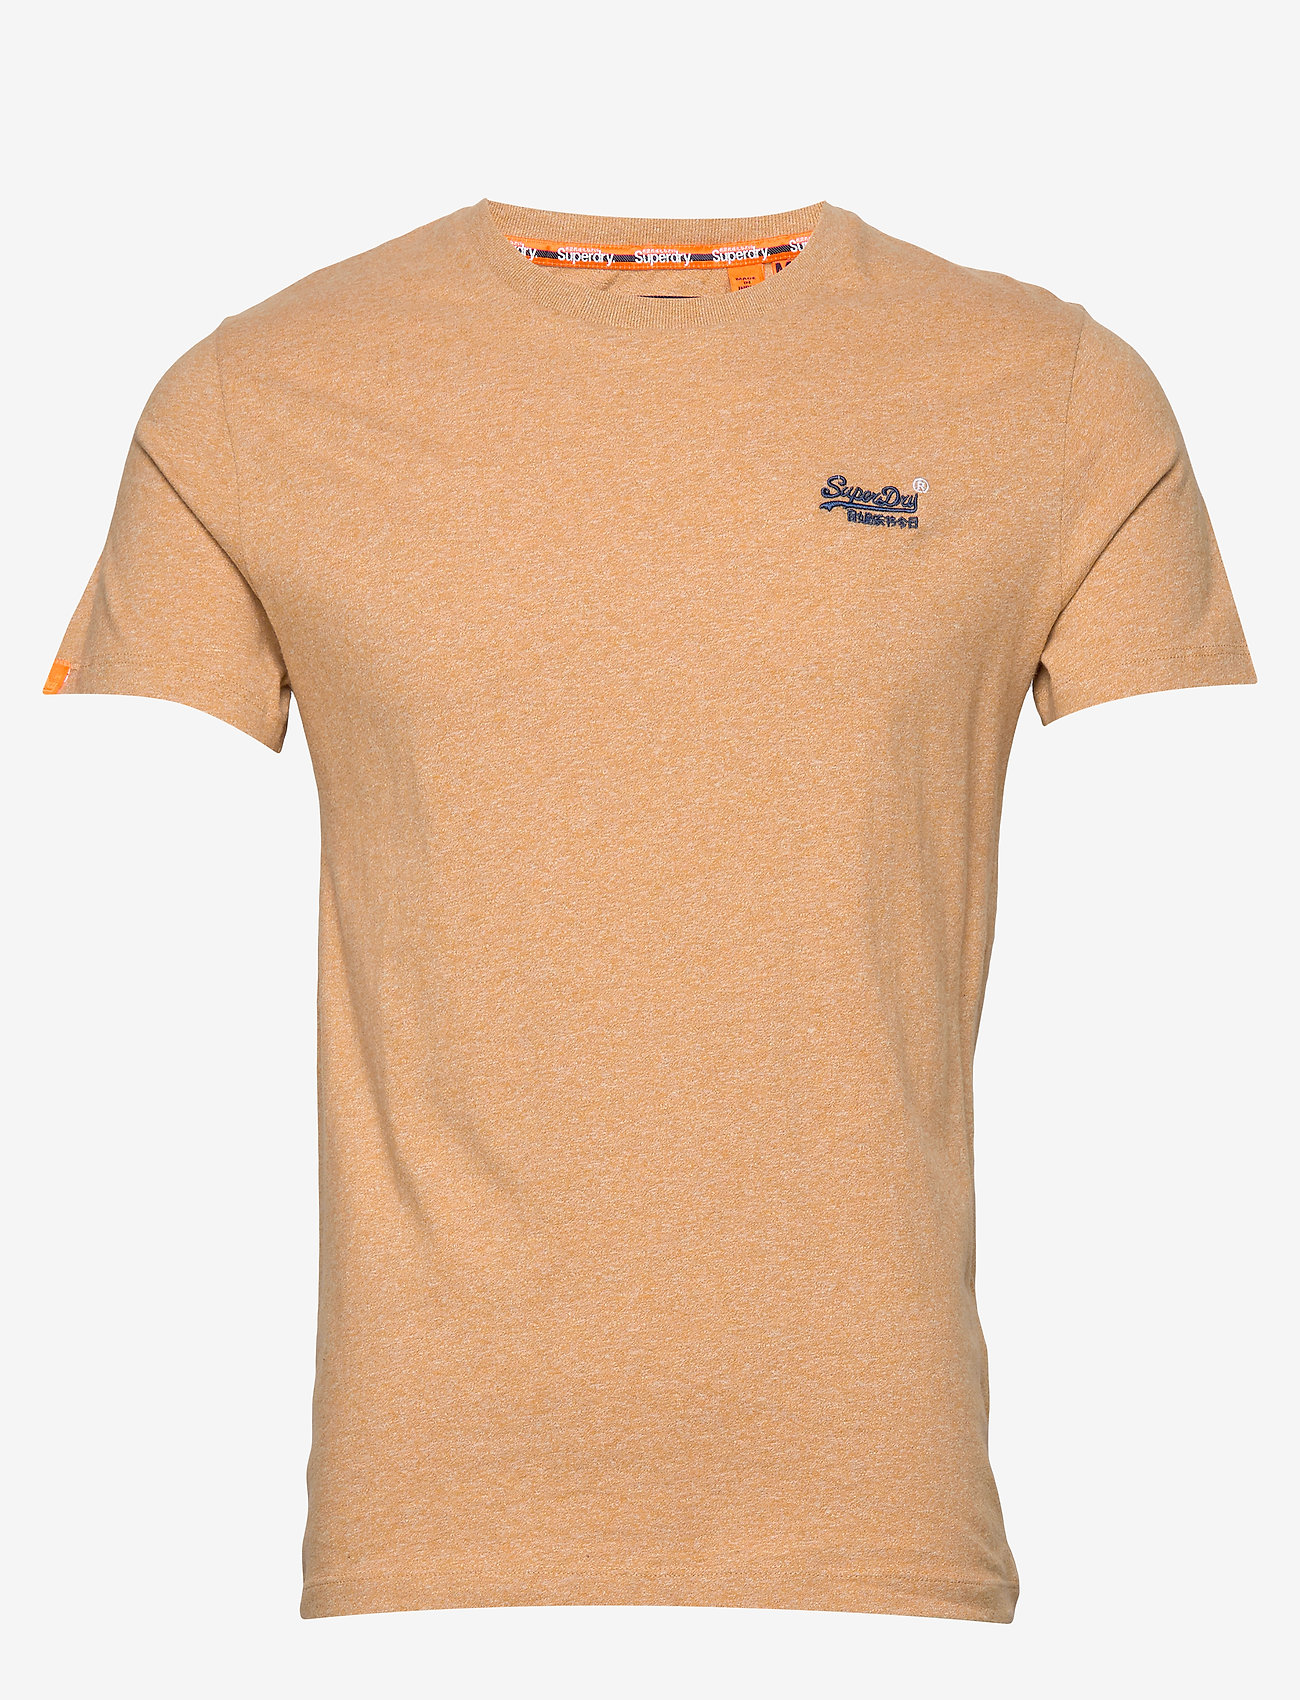 Superdry OL VINTAGE EMBROIDERY TEE - T-shirts BURNT GOLD GRIT AaxUnPLB